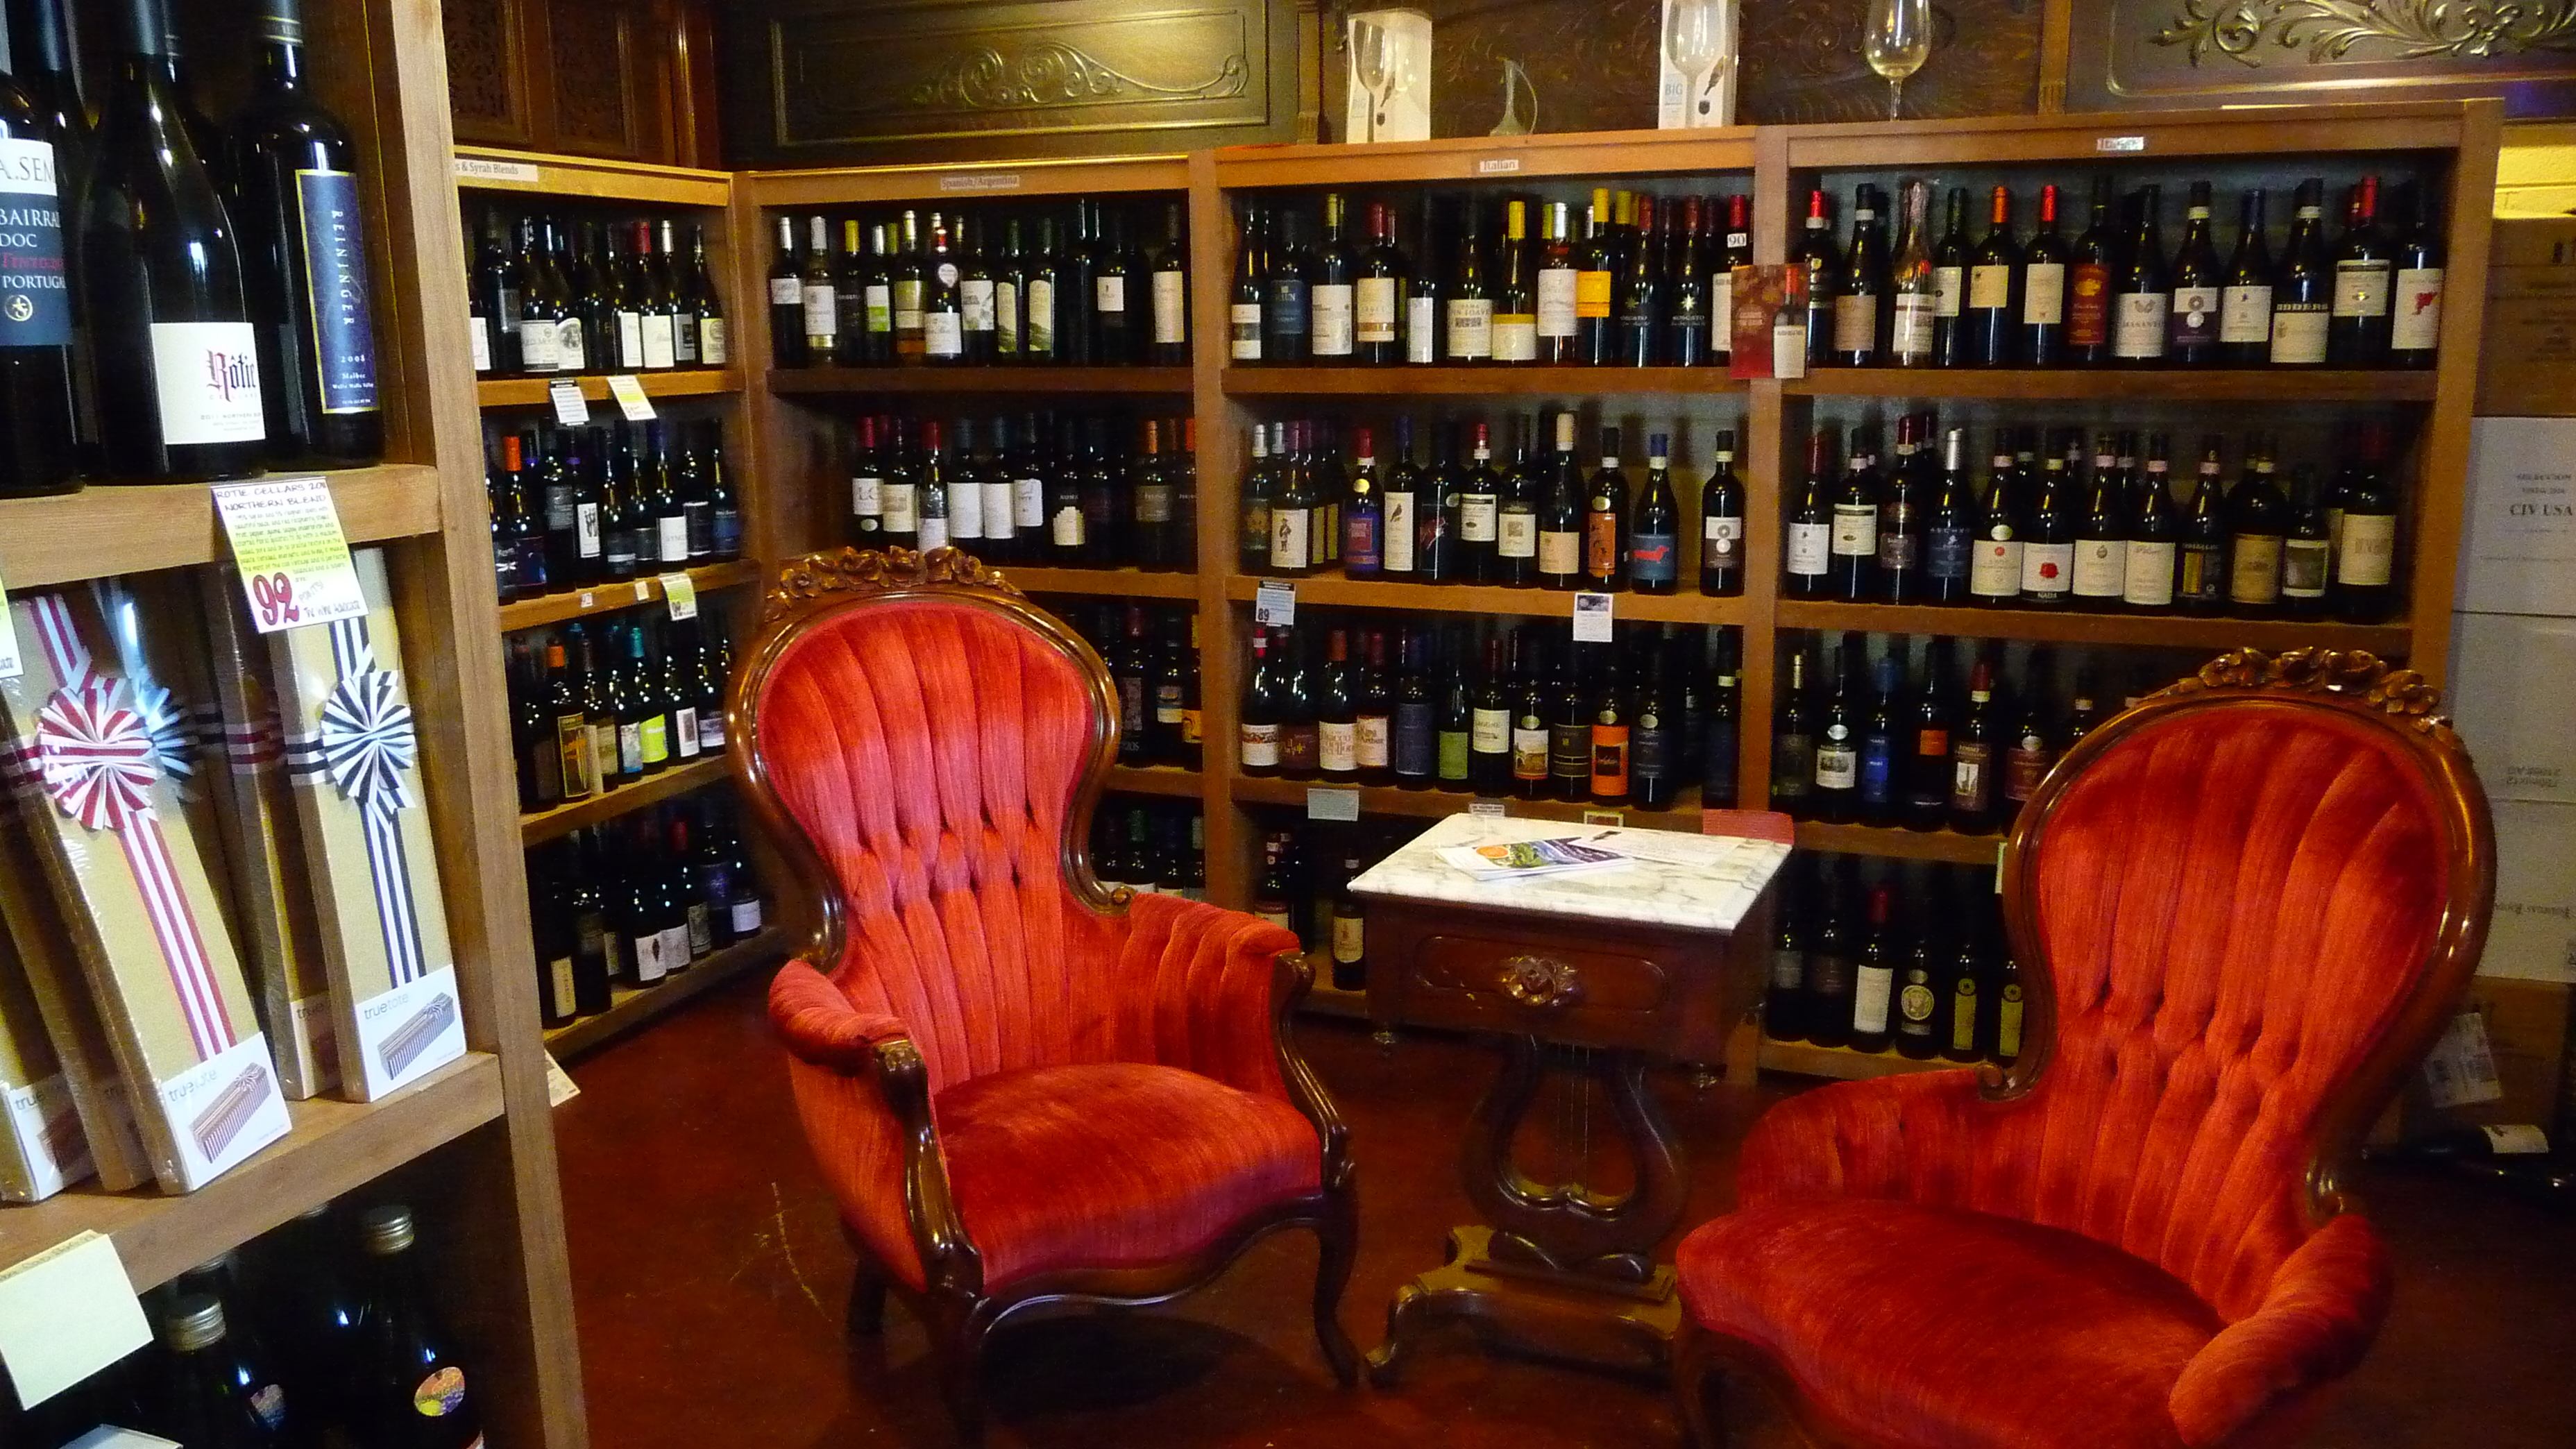 Cozy interior seating at Evergreen Wine Cellar surrounded by fine wines from around the world and & Evergreen Wine Cellaru0027s Italian tasting tonight Latte dau0027s wine bar ...